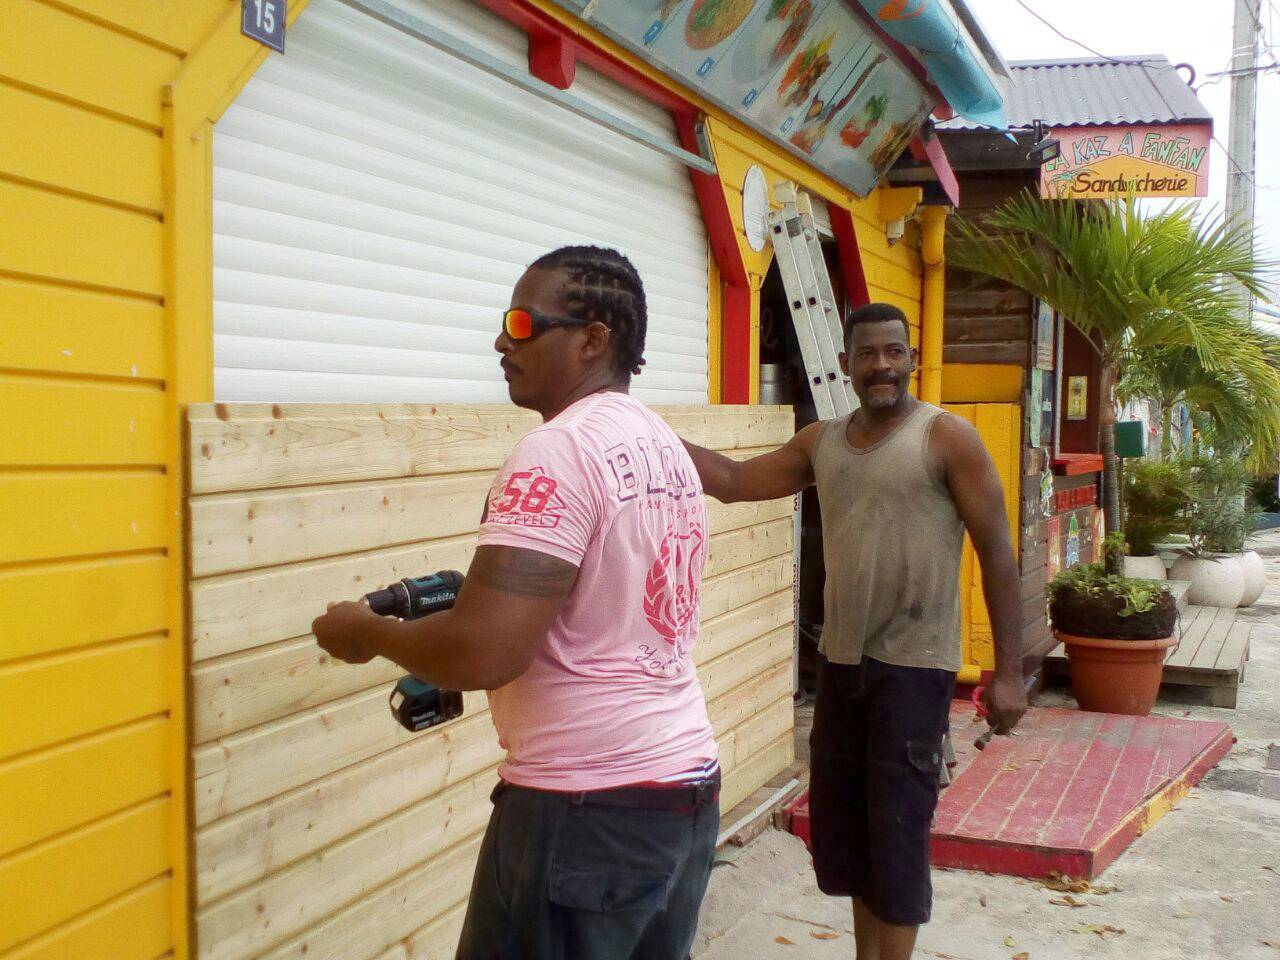 Men board up buildings Monday ahead of Hurricane Maria in Sainte-Anne on the French Caribbean island of Guadeloupe. Hurricane Maria grew into a Category 5 storm on Monday as it barreled toward a potentially devastating collision with islands in the eastern Caribbean.